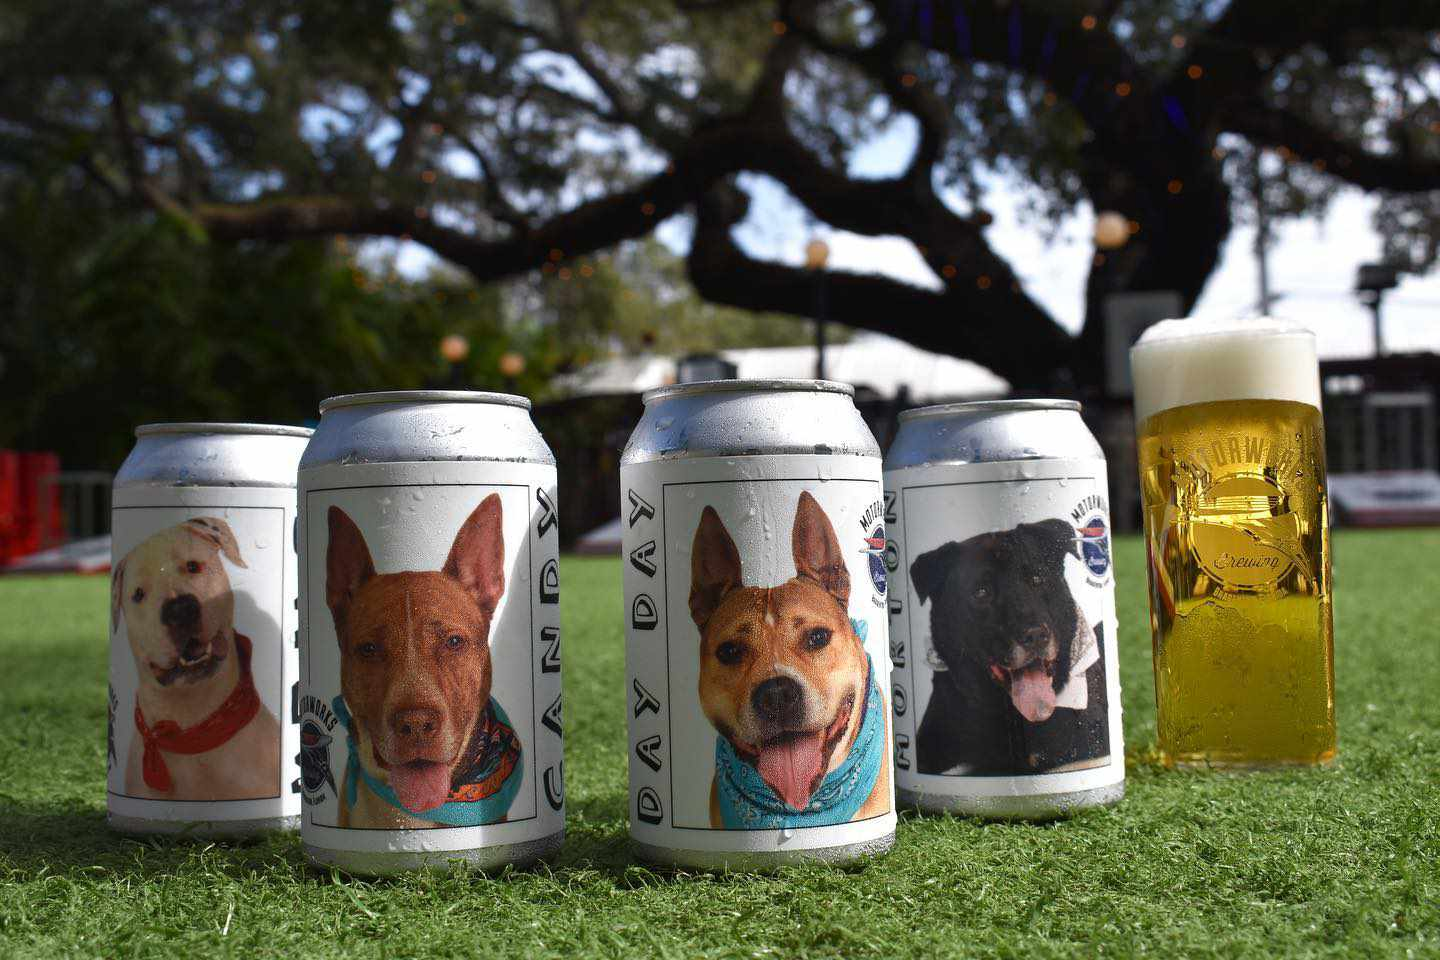 adoptable dogs on beer cans